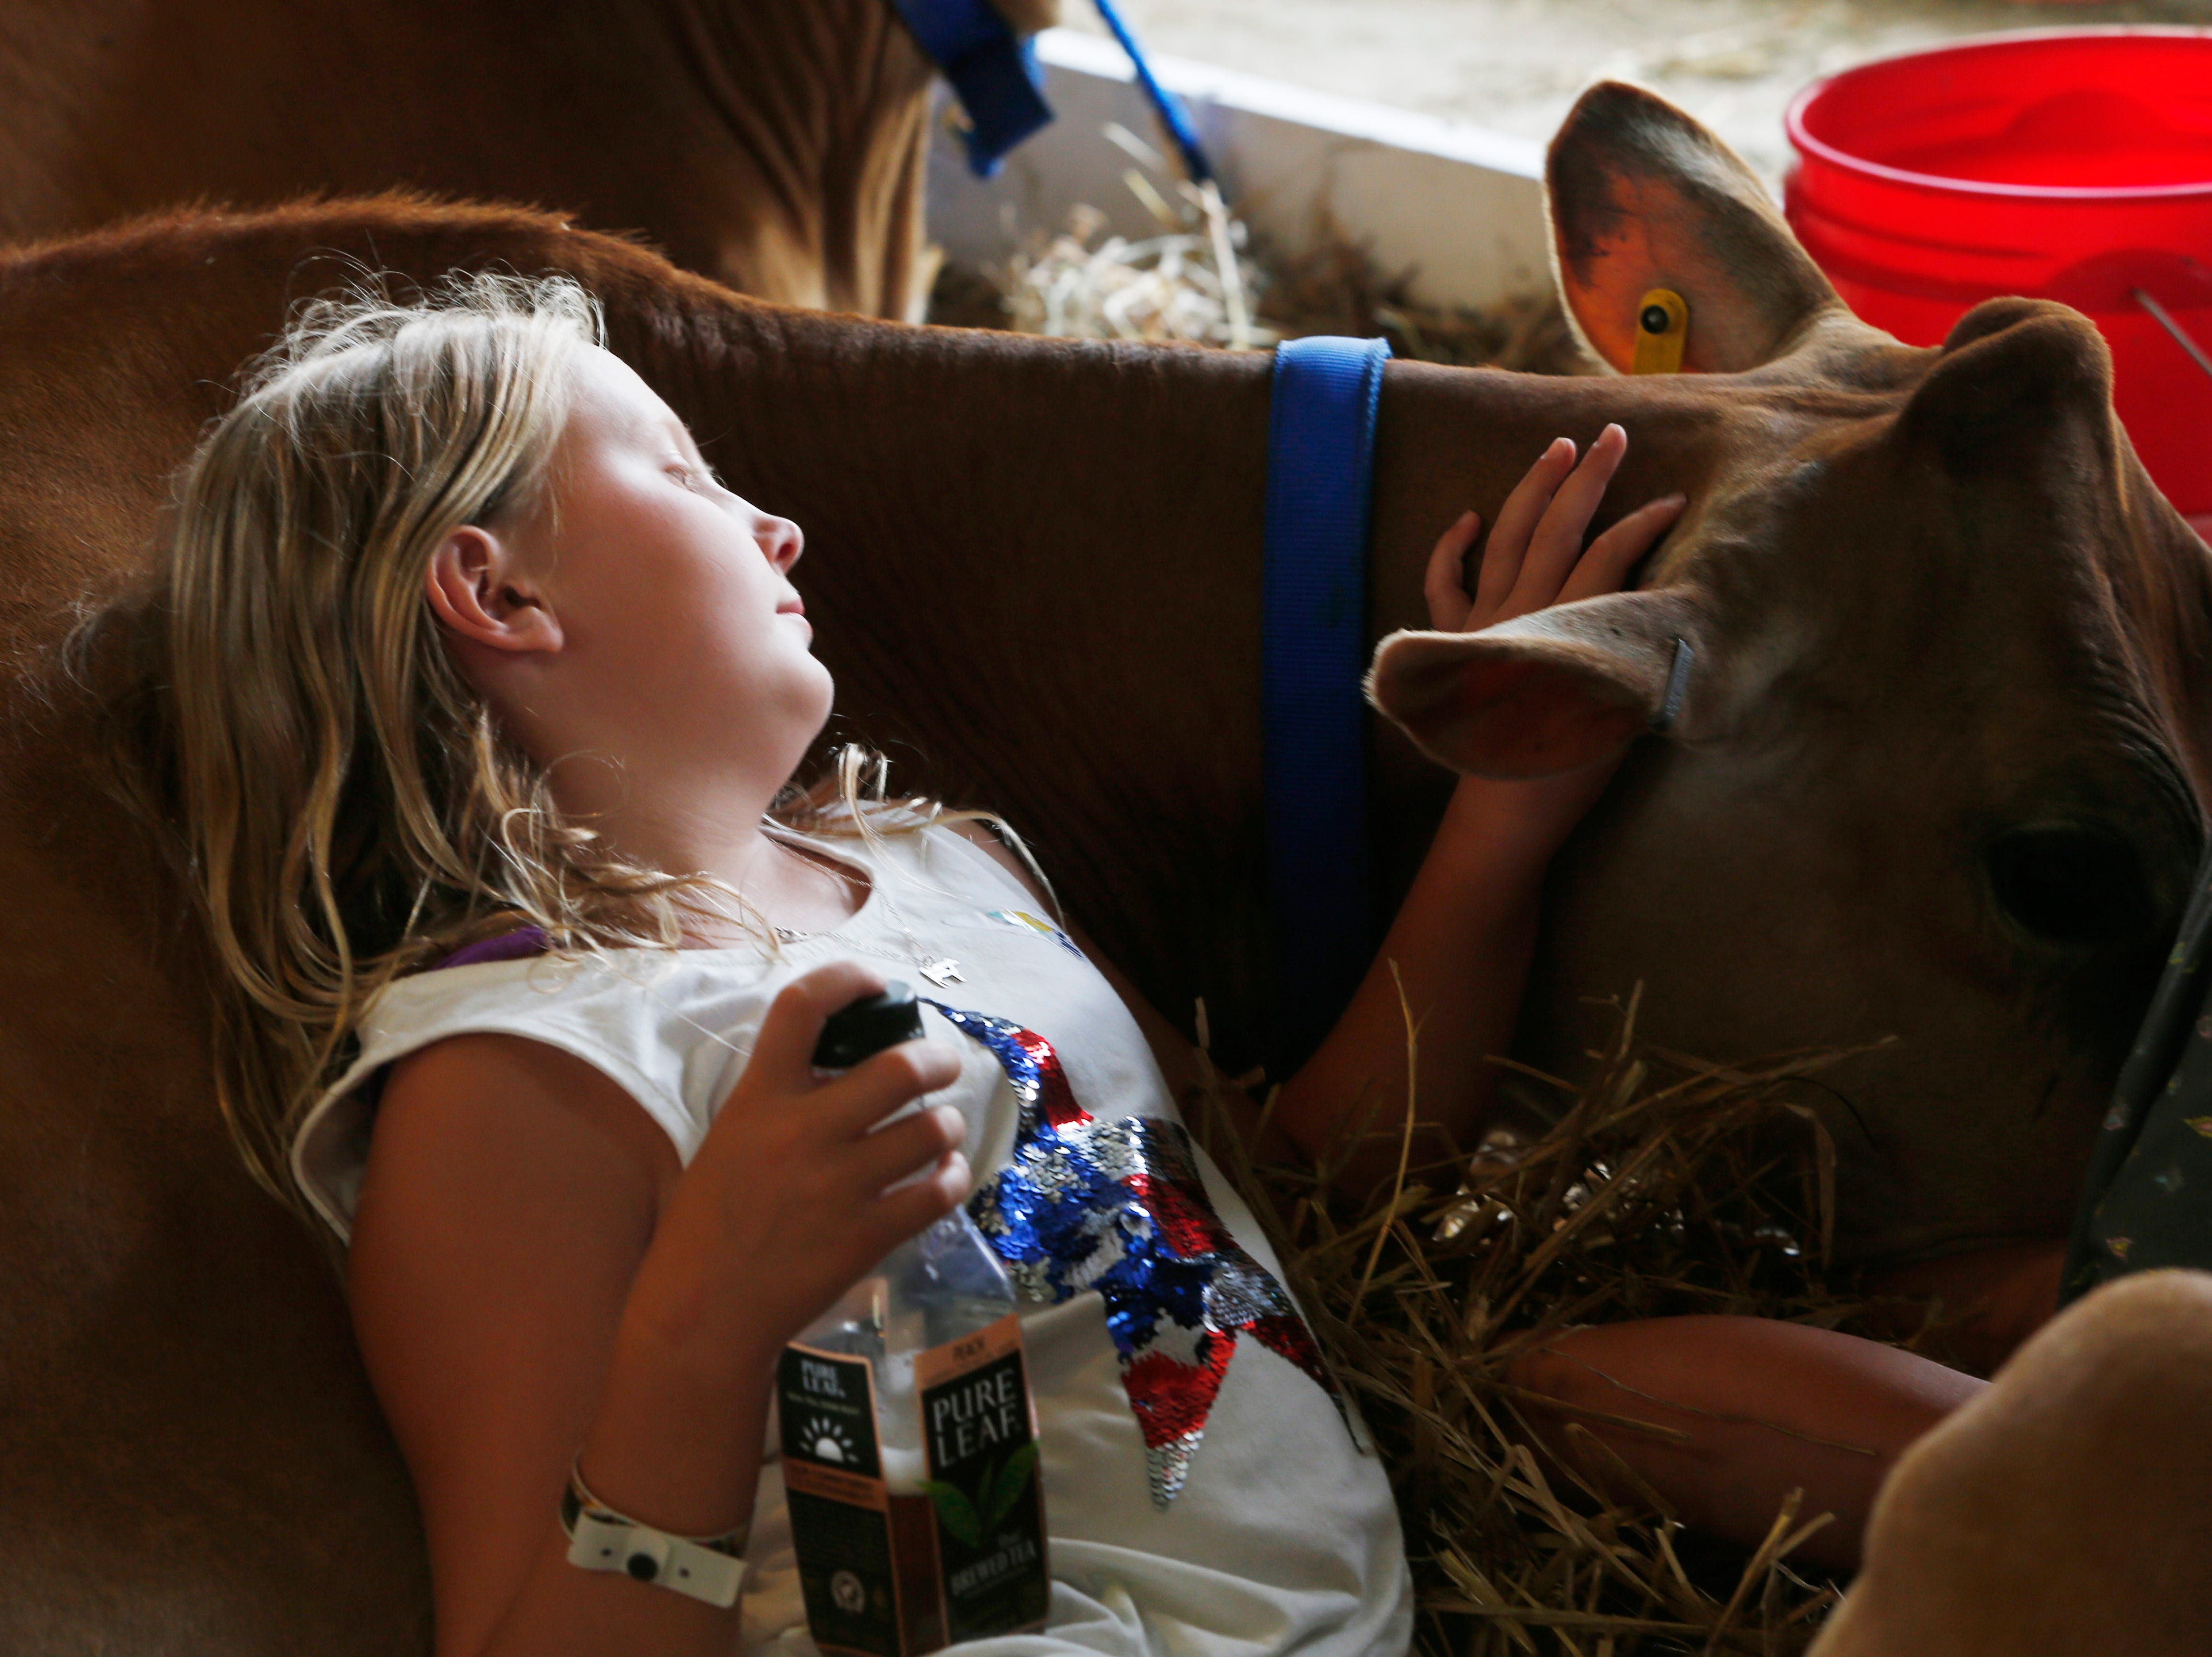 Maddison Goodnow of Garnder rests on her cow at the Ulster County Fair in New Paltz on July 31, 2018.